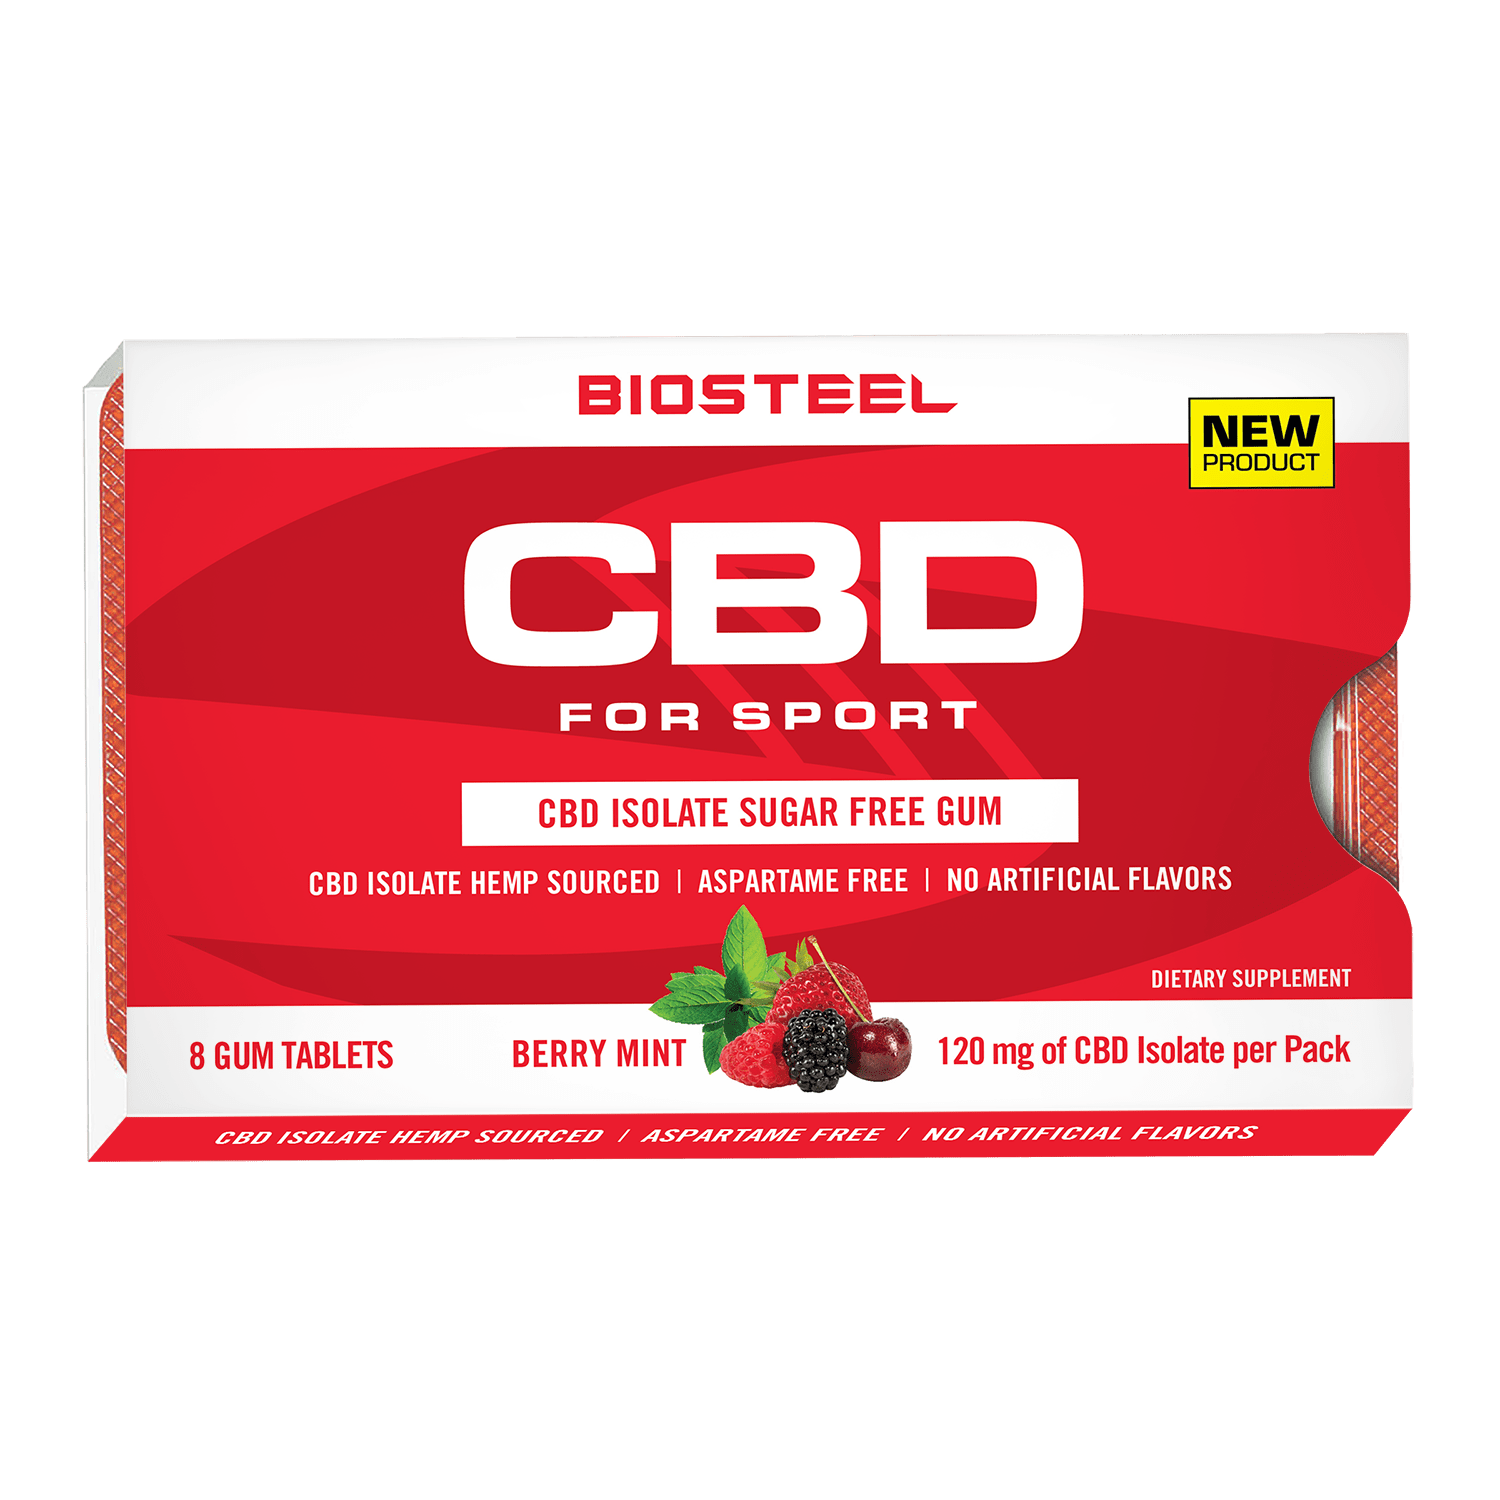 BioSteel CBD Sugar-Free Berry Mint Gum